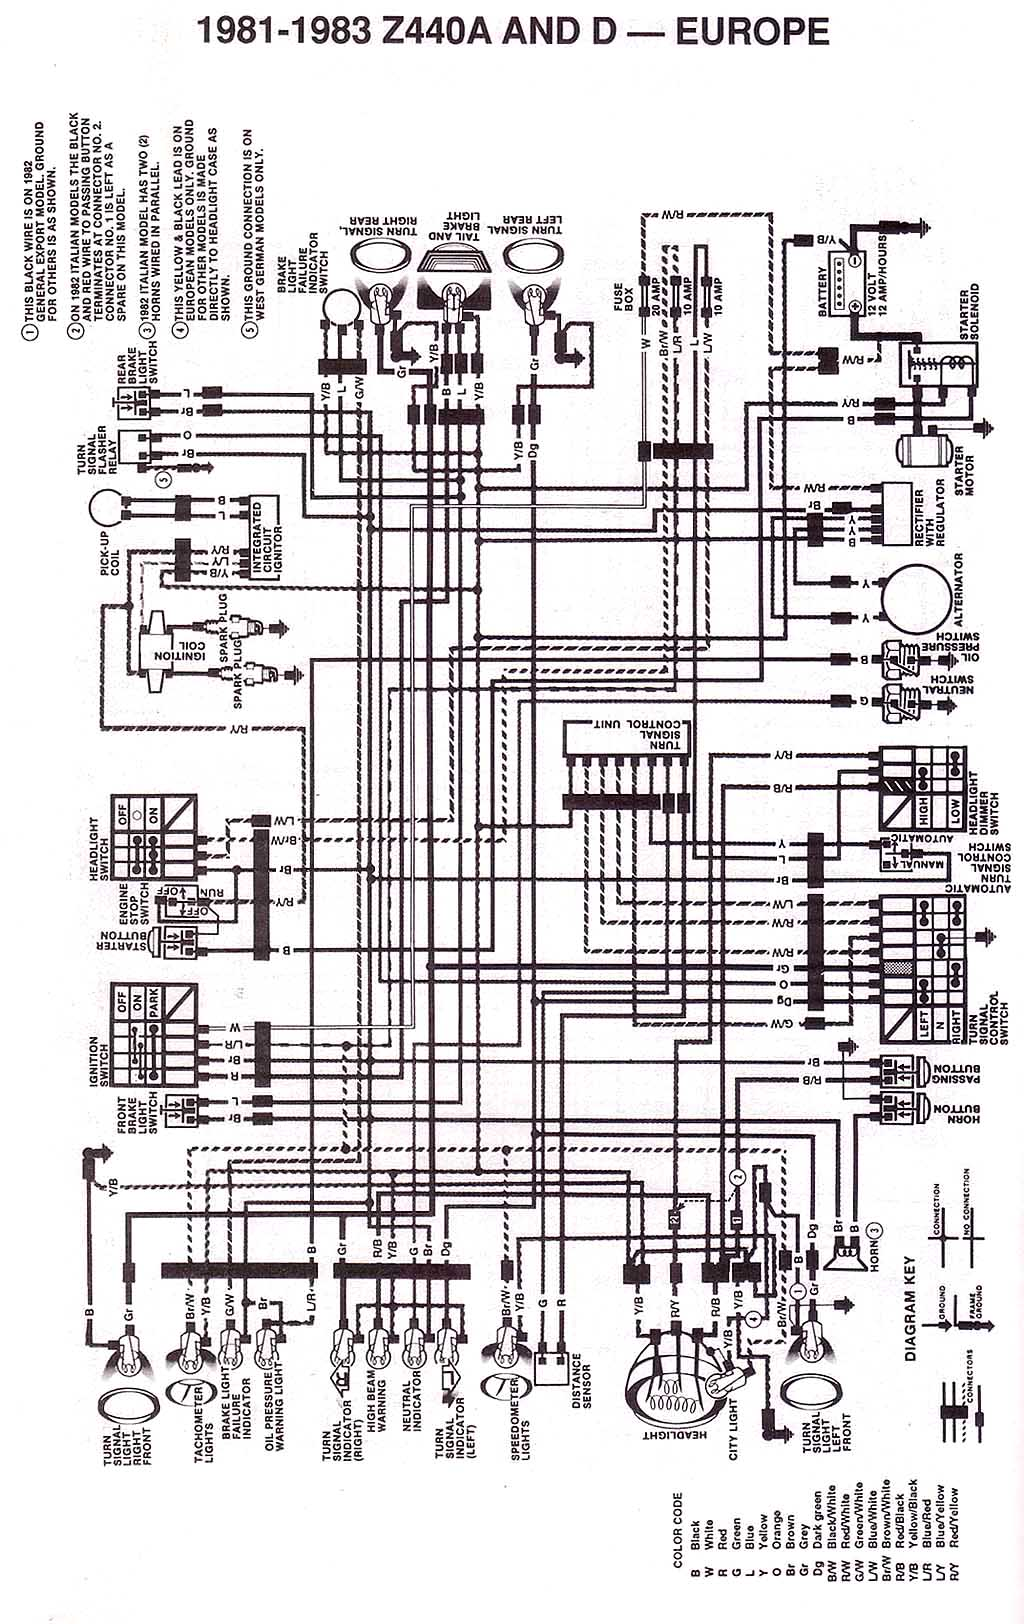 [DIAGRAM] 1981 Kawasaki Kz440 Wiring Diagram FULL Version